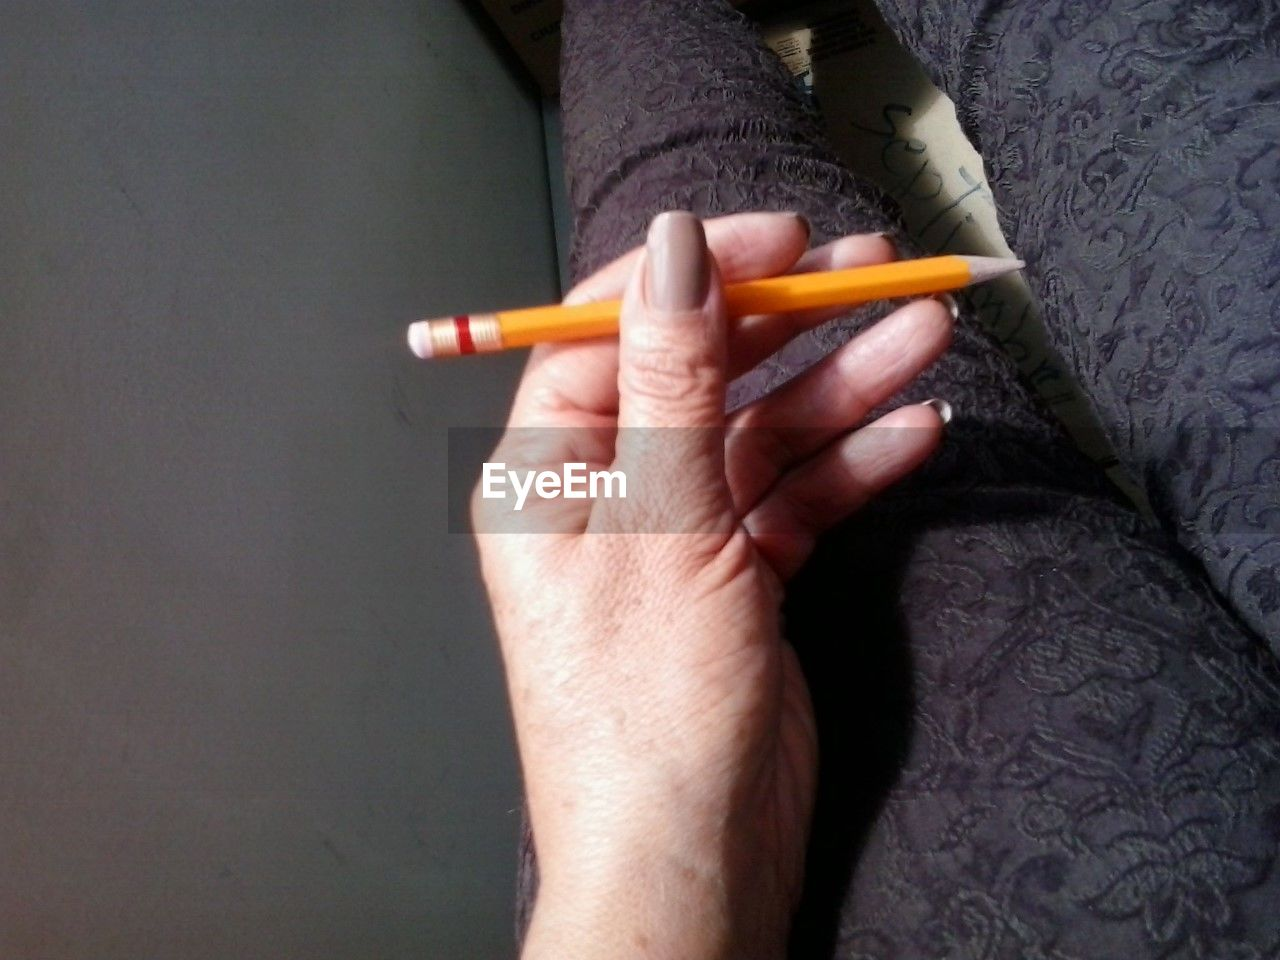 holding, human hand, hand, human body part, cigarette, one person, close-up, smoking issues, indoors, bad habit, real people, activity, warning sign, sign, smoking - activity, social issues, risk, cigarette butt